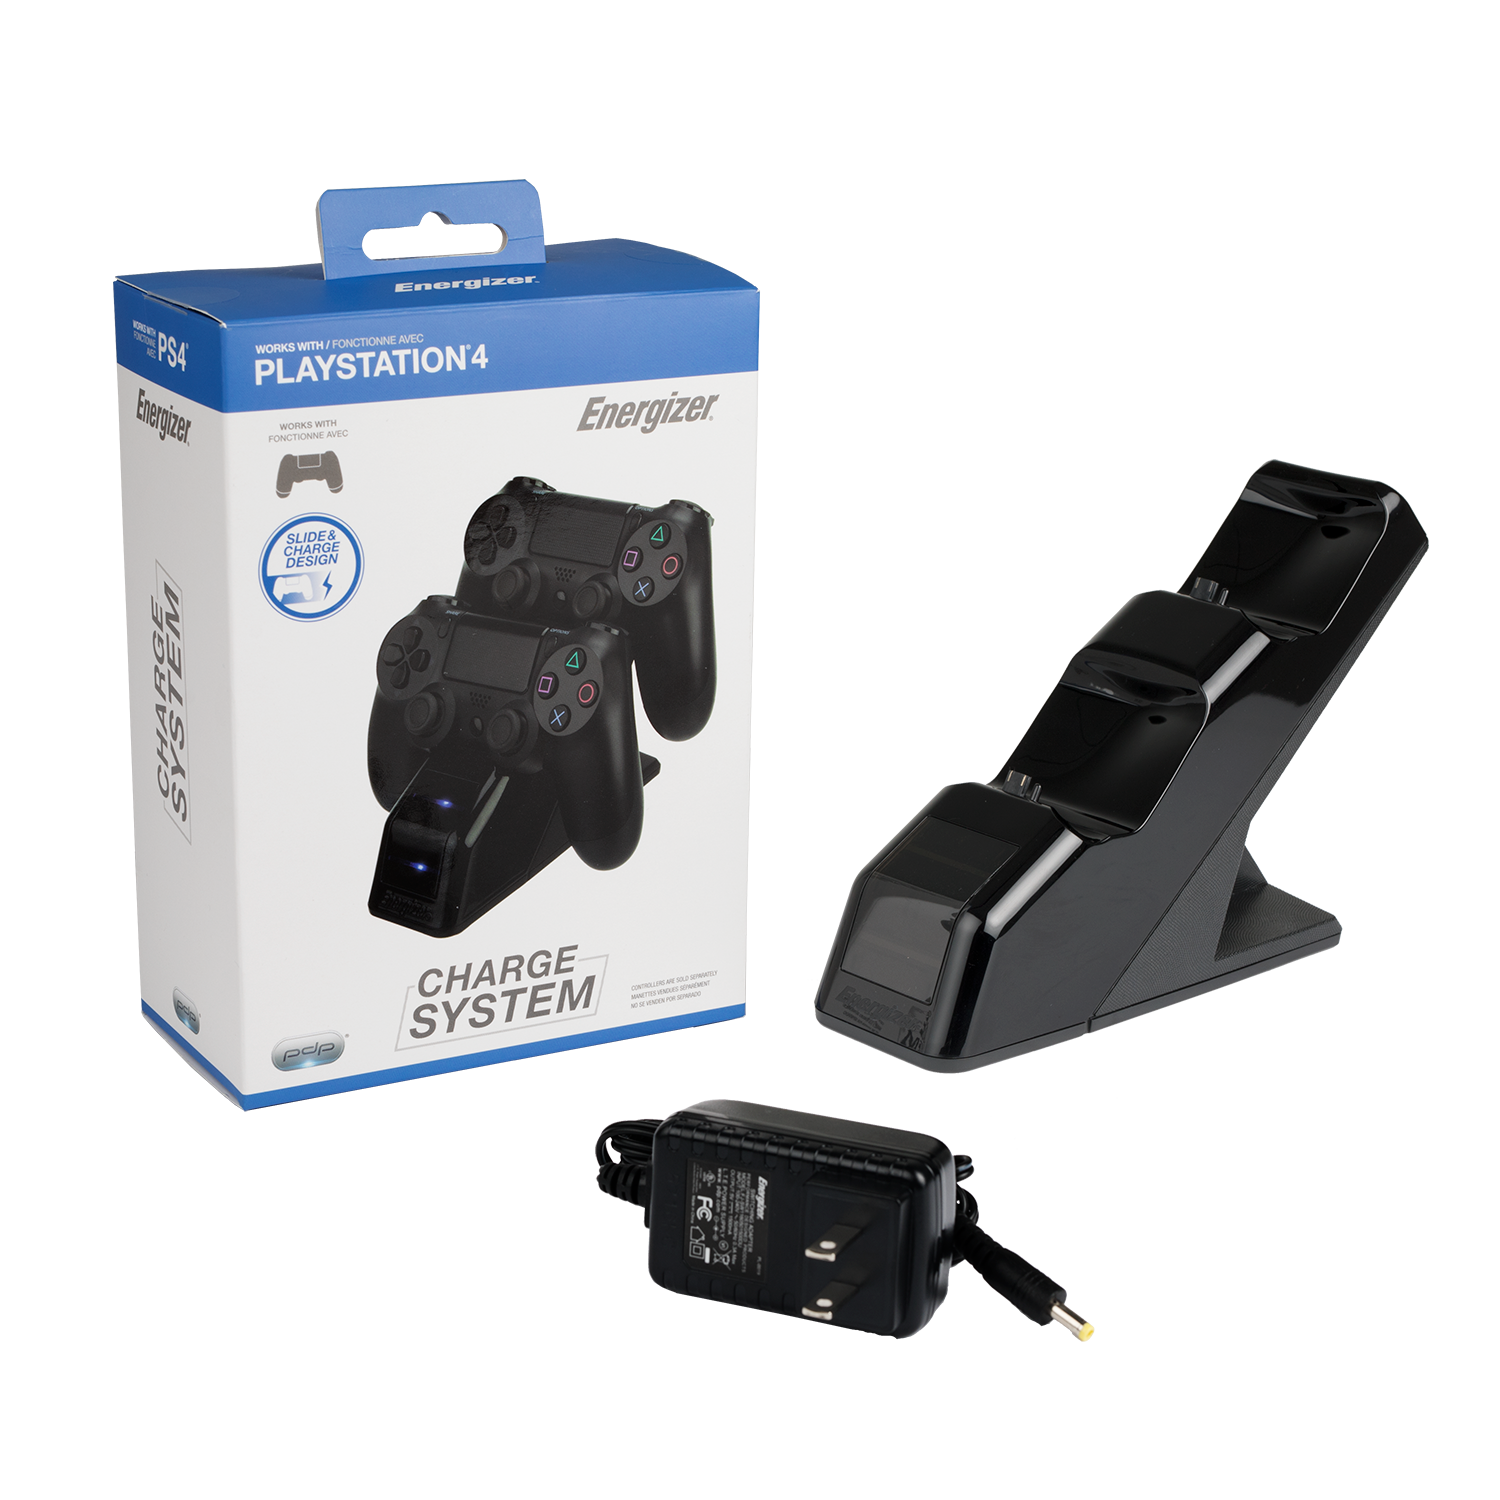 PDP Energizer PS4 Controller Charger Charging Station, Black, 0019